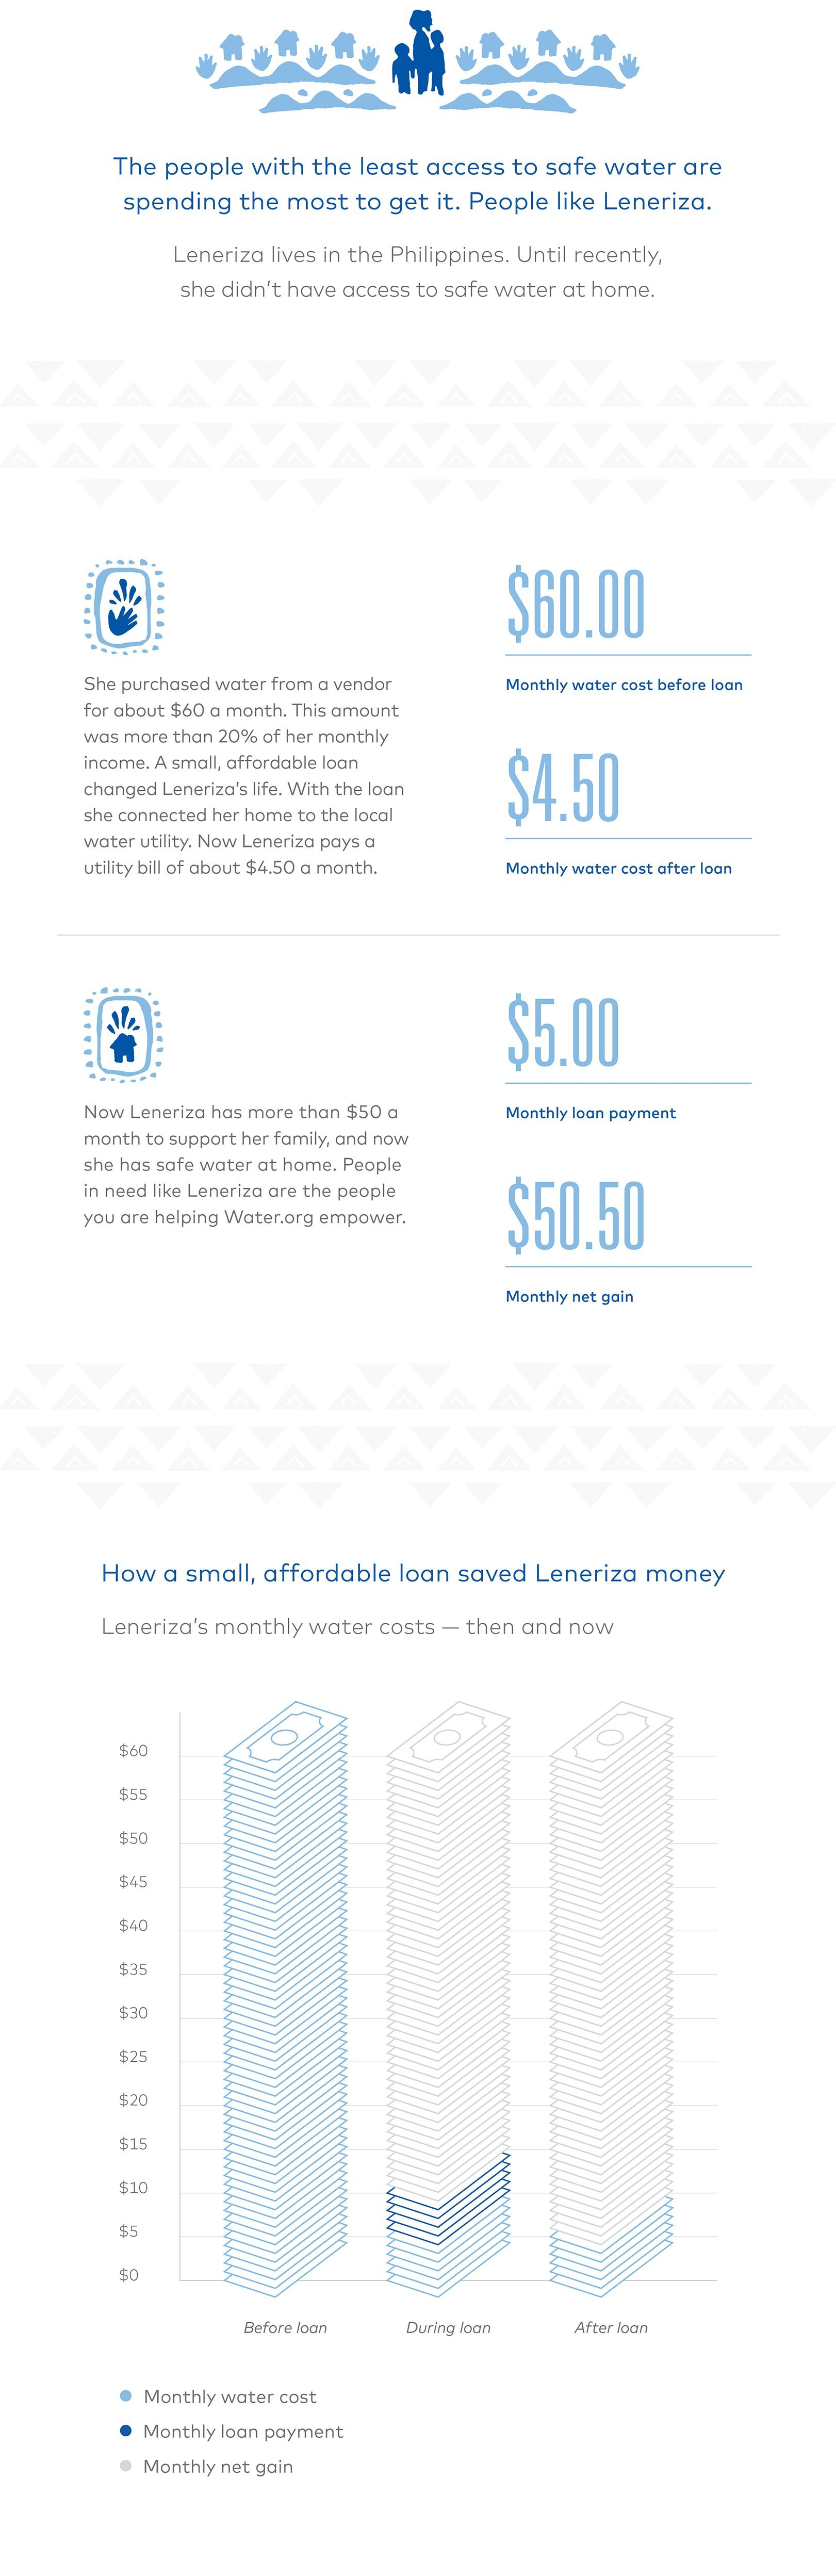 Leneriza's monthly water costs - then and now